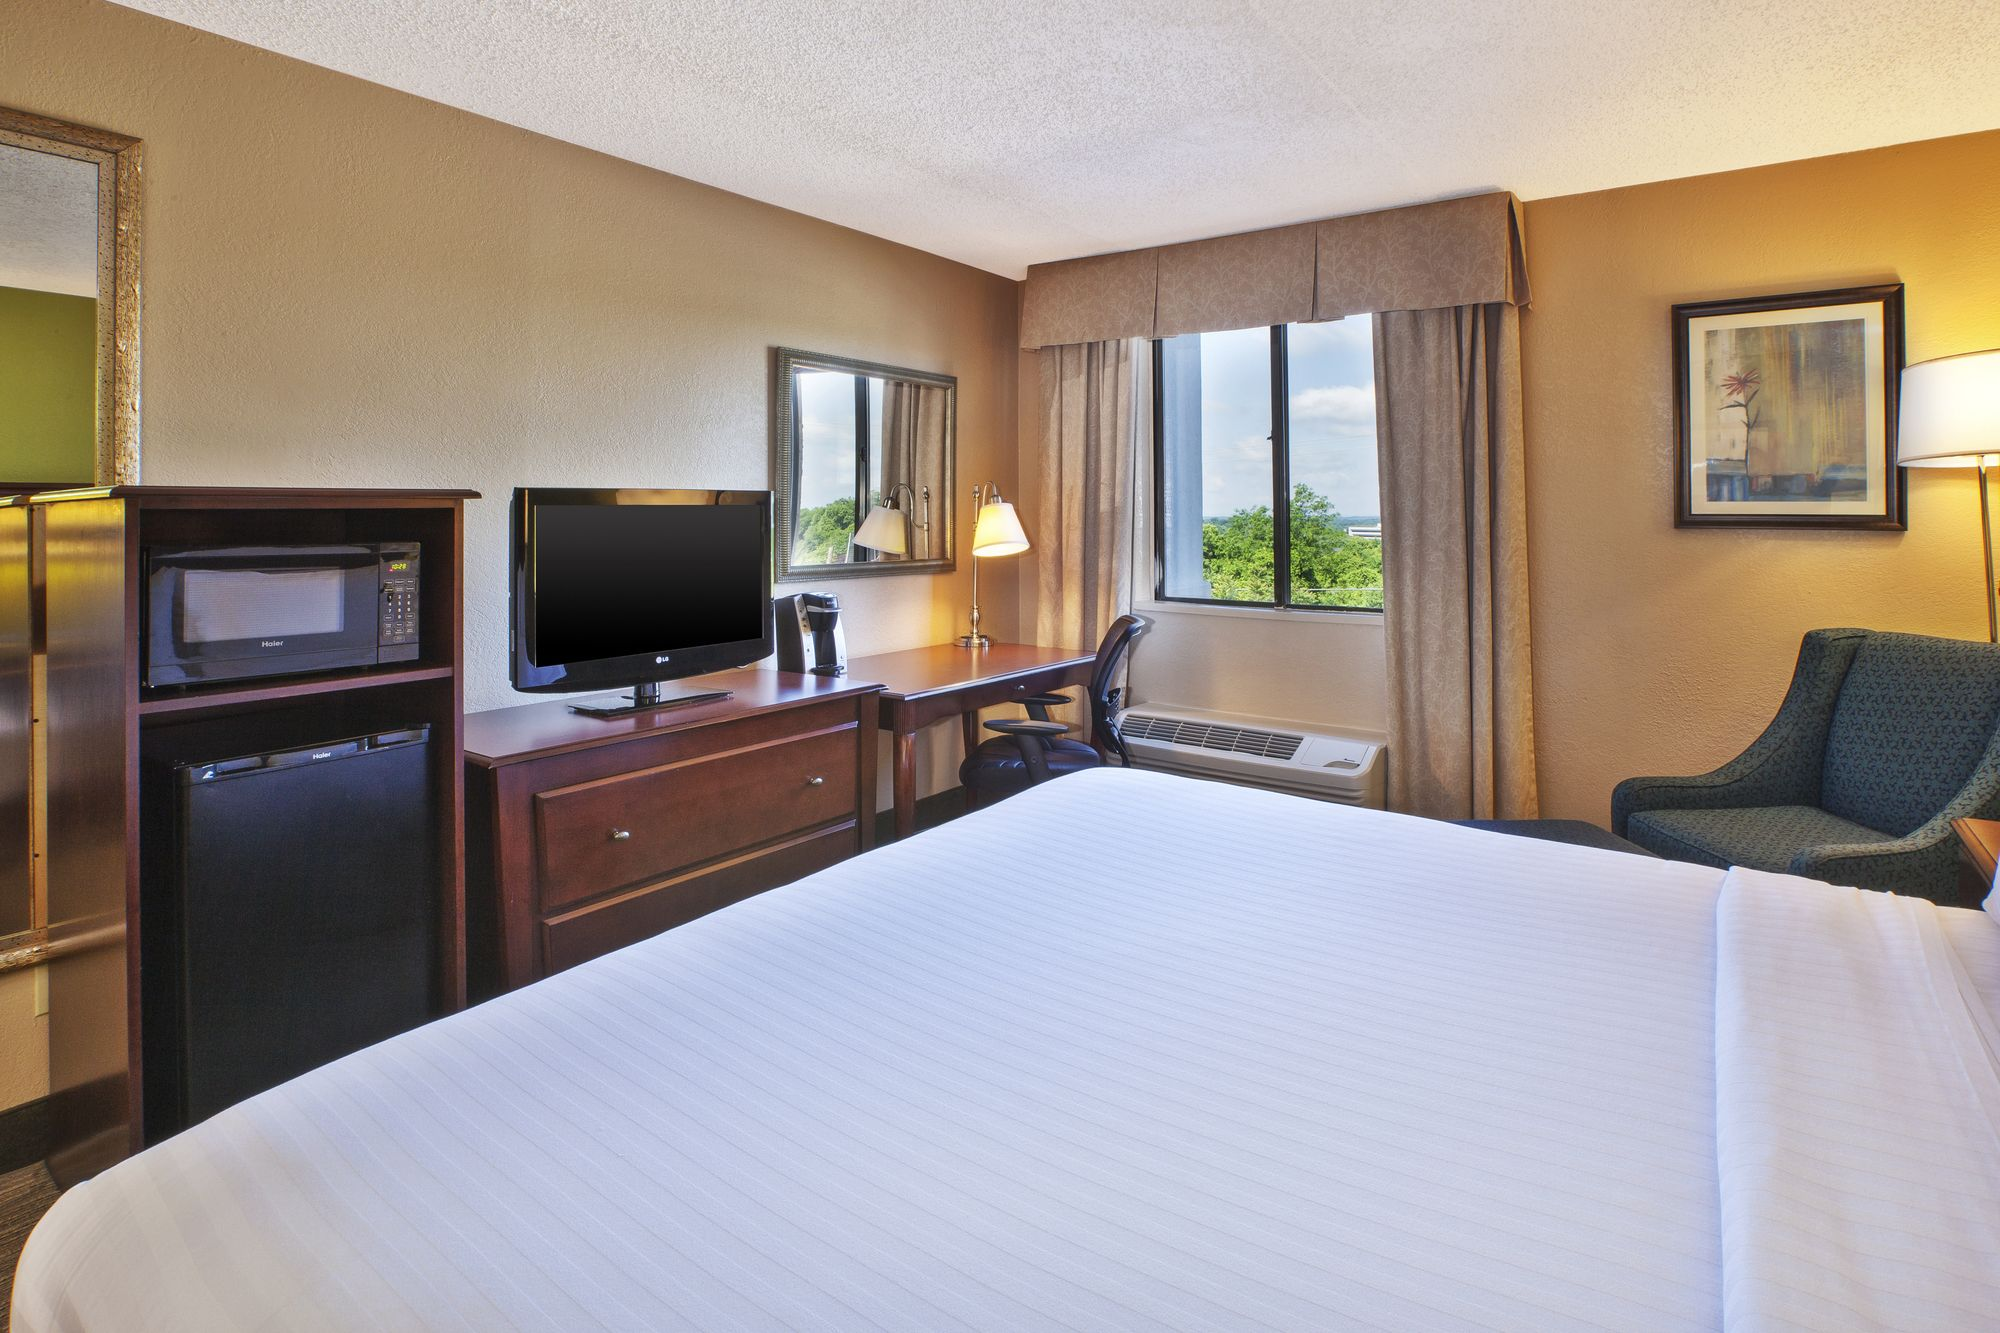 Holiday Inn Express Hotel & Suites Germantown-Gaithersburg